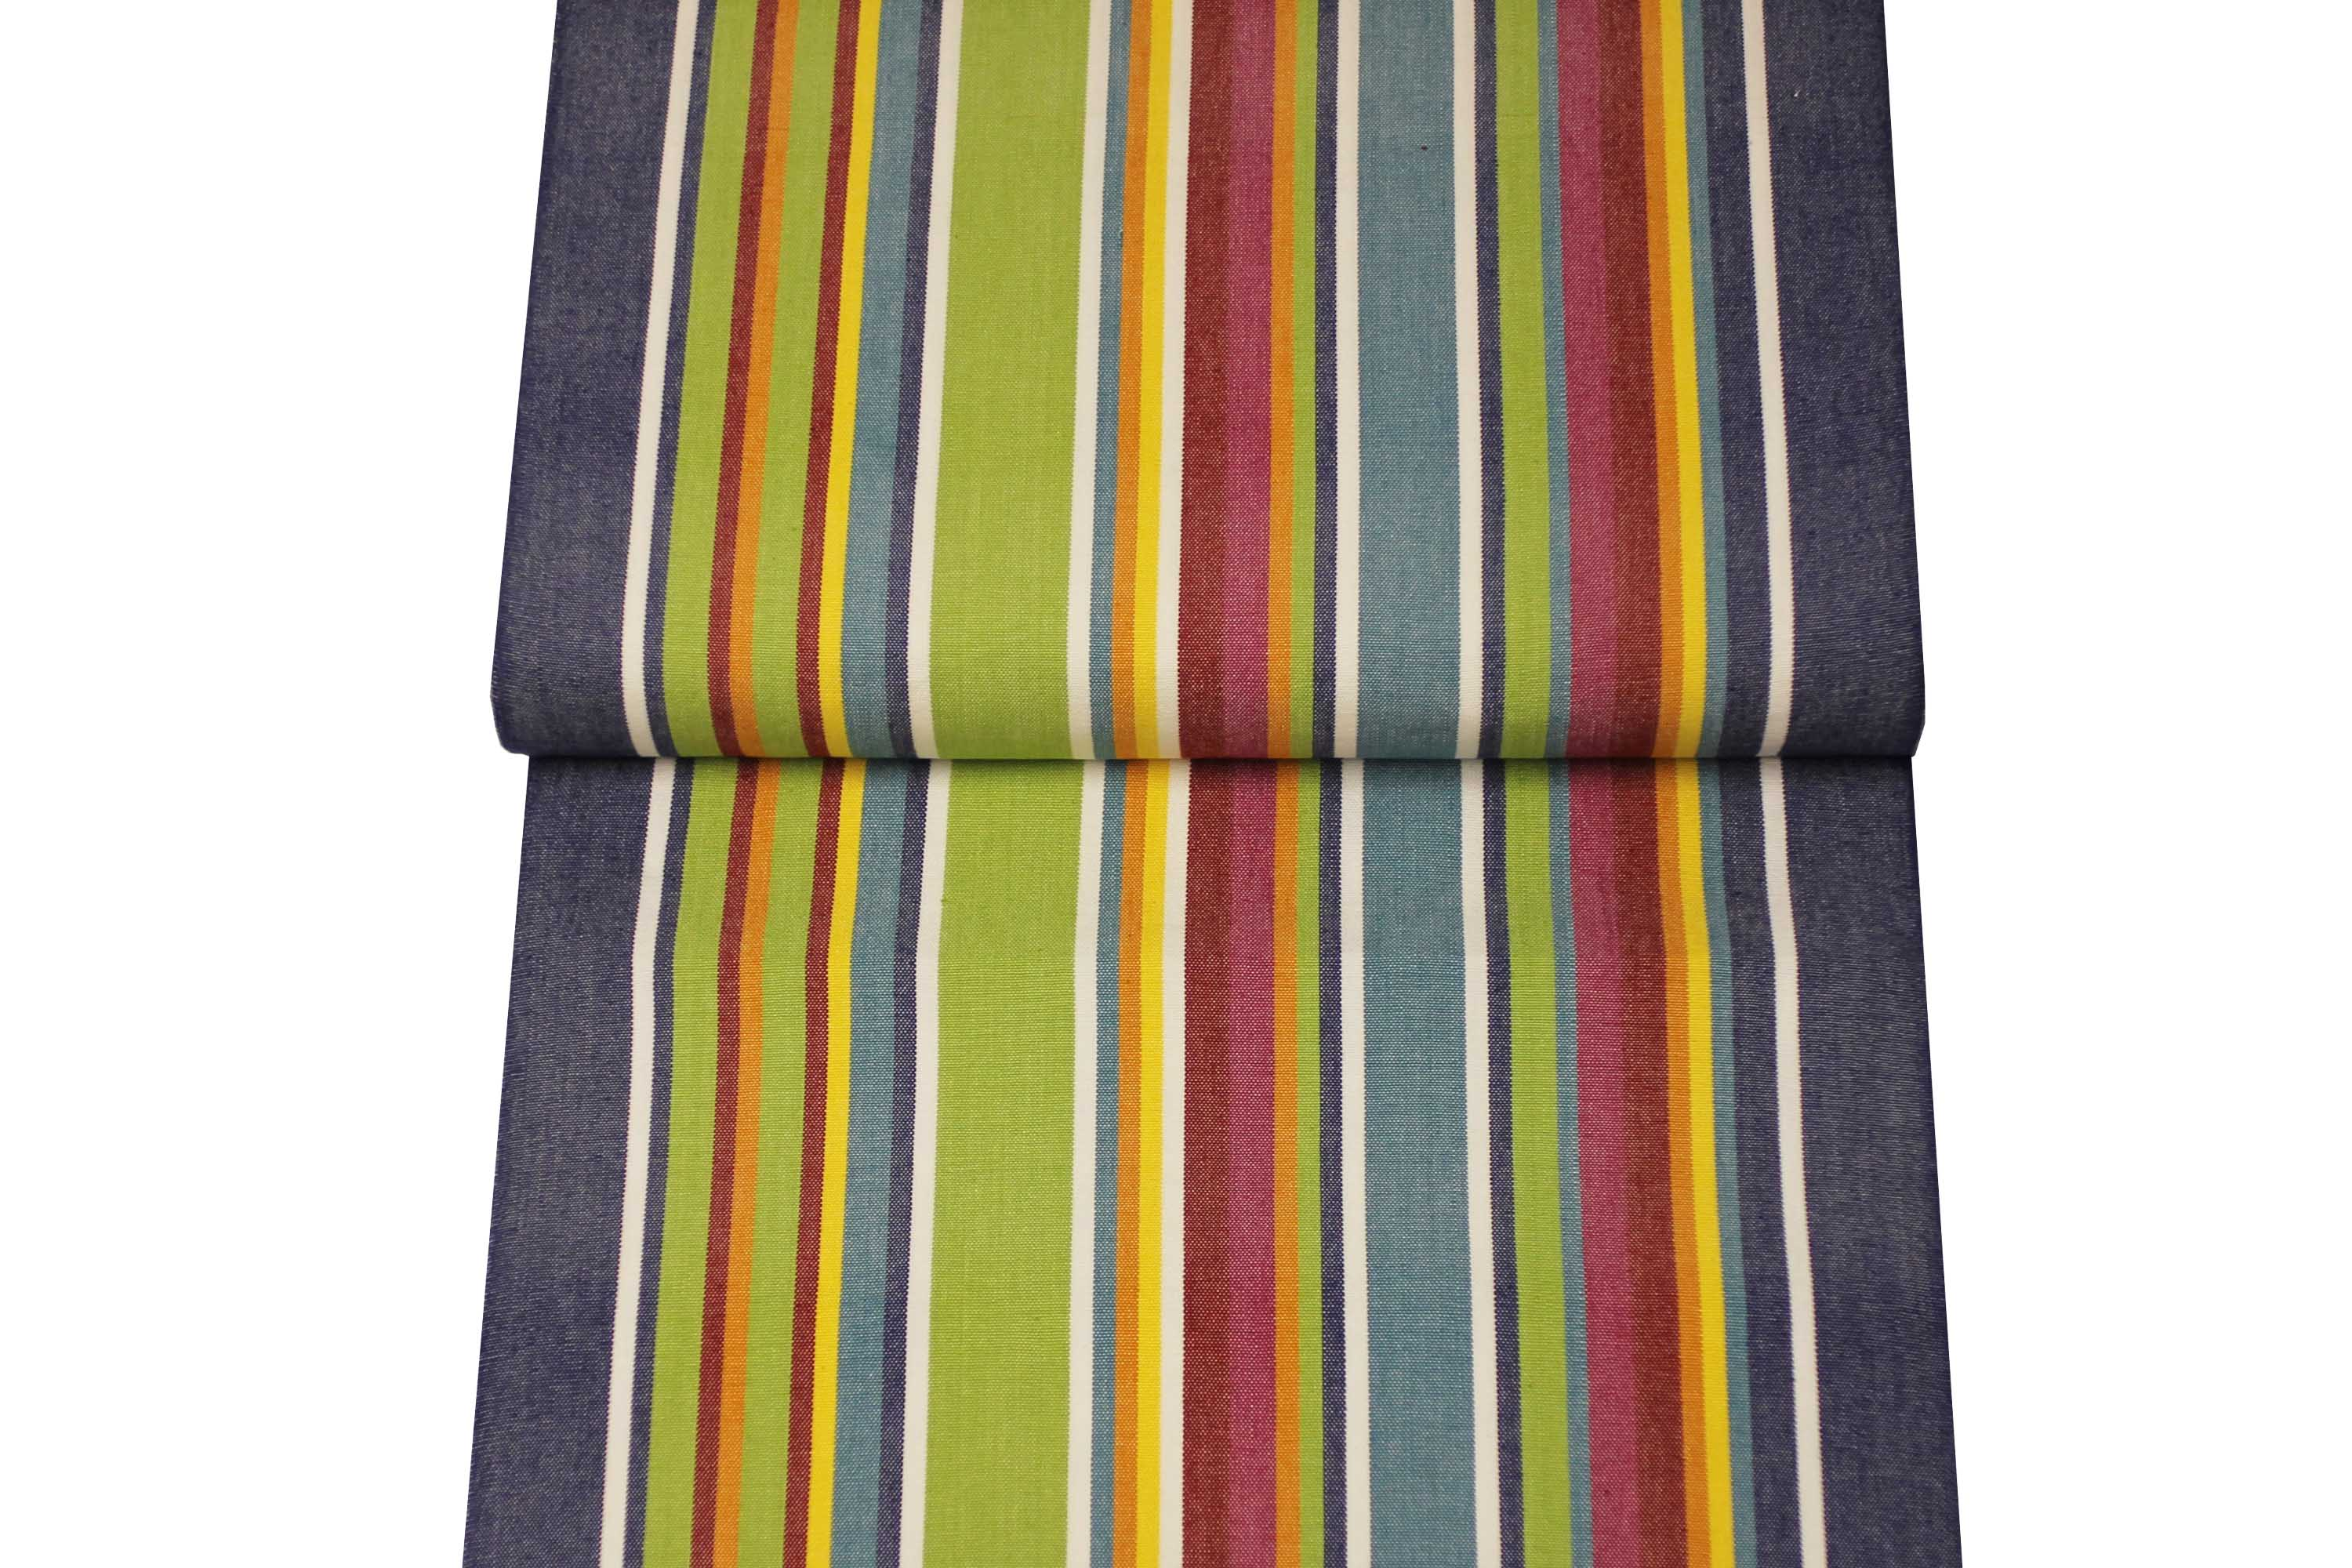 Striped Deckchair Canvas Fabric Strong in Blue, Green, Red, Yellow Stripes